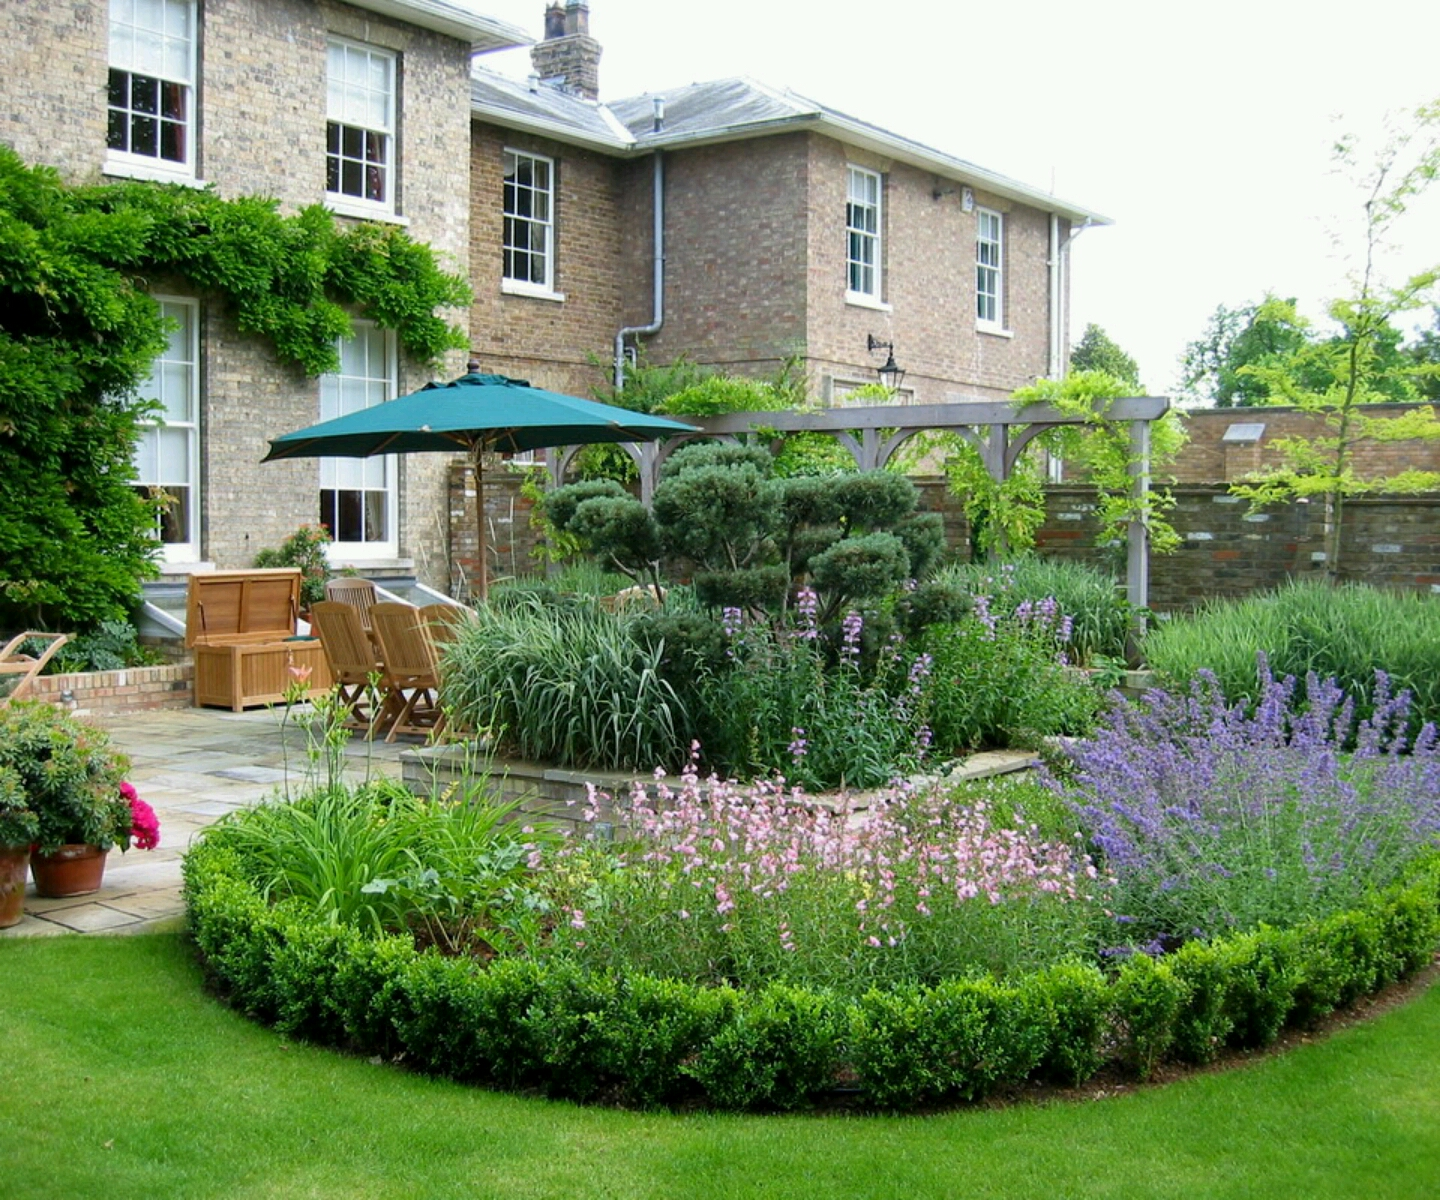 New home designs latest modern homes garden designs ideas for Small modern garden design ideas